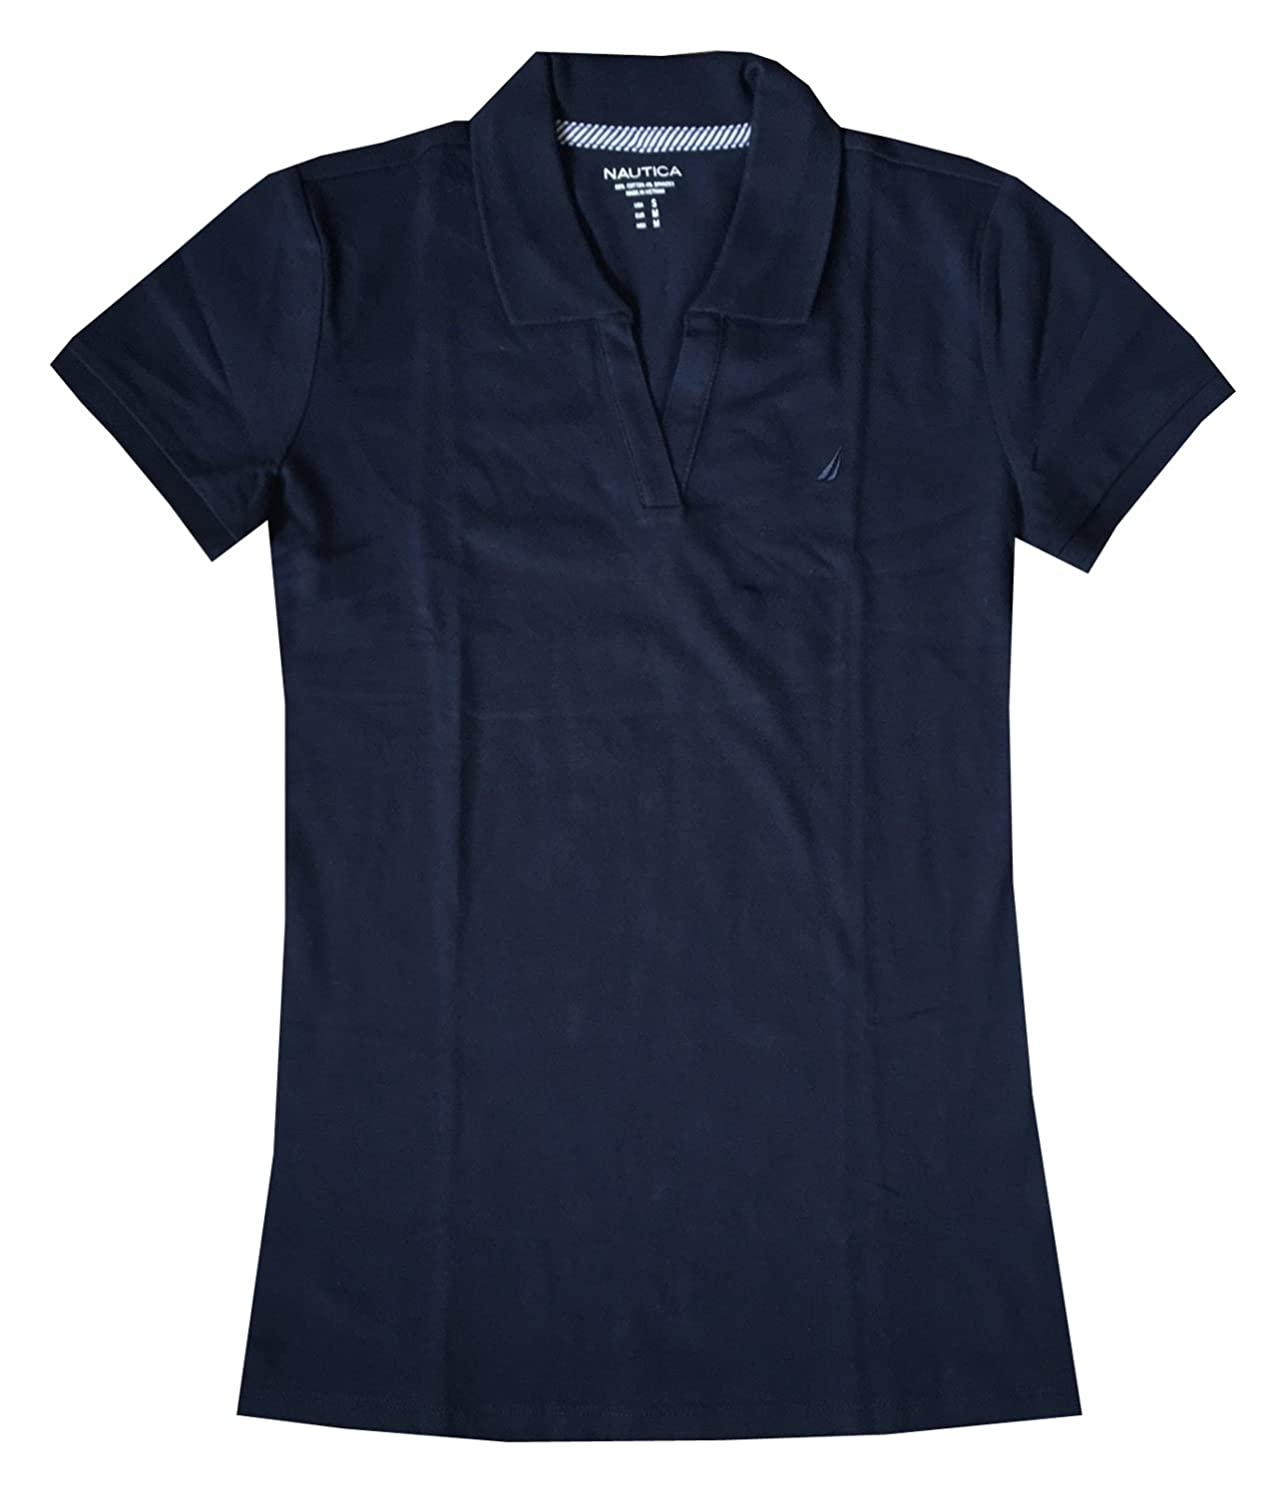 Nautica Women Split-Neck Polo Shirt (XXL, Navy): Amazon.es: Ropa y ...